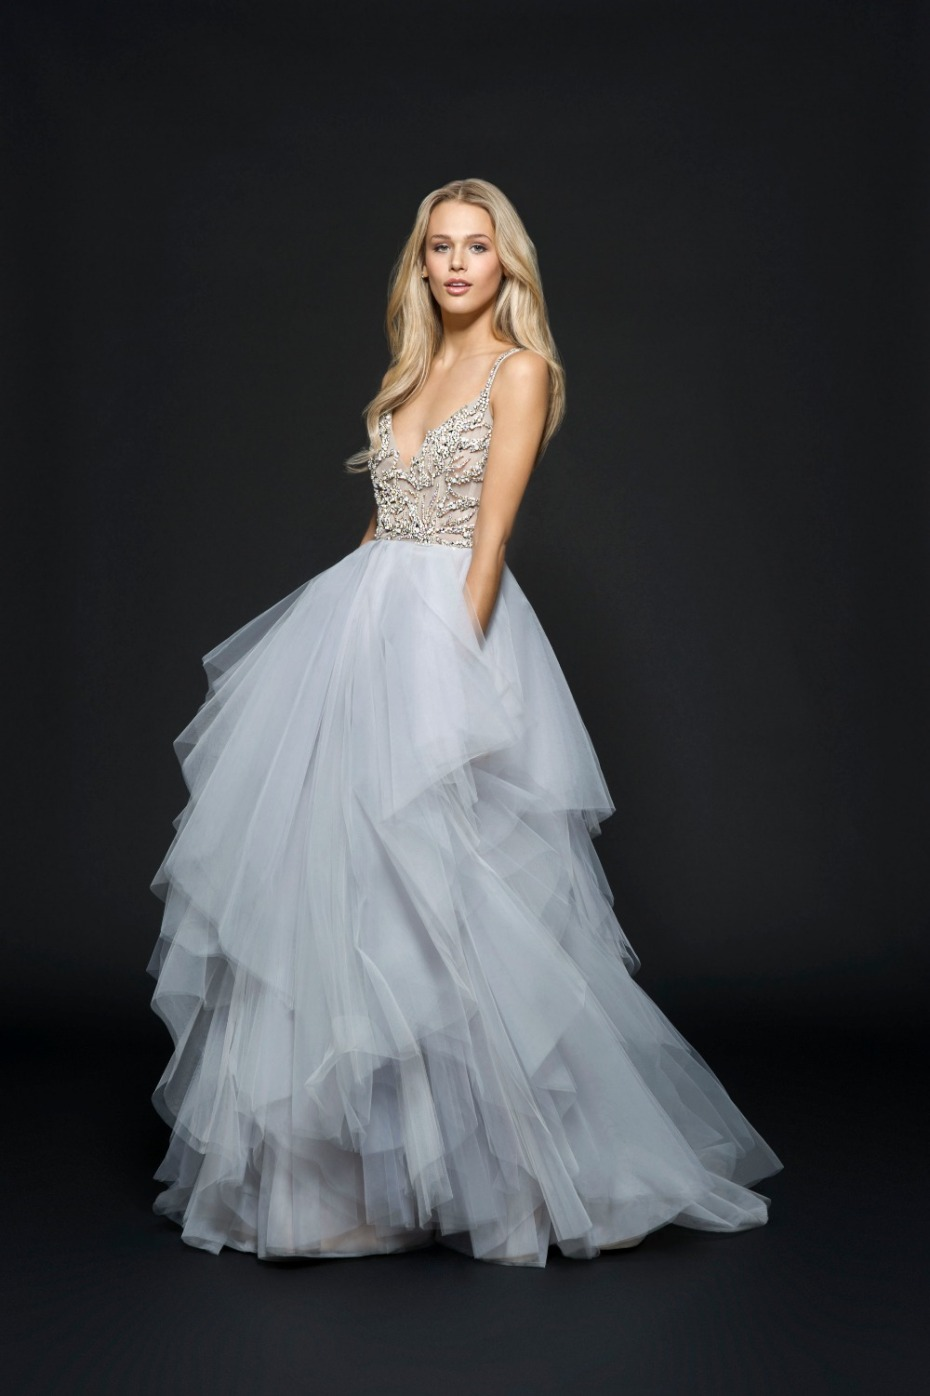 7 Tips for Finding a Wedding Dress